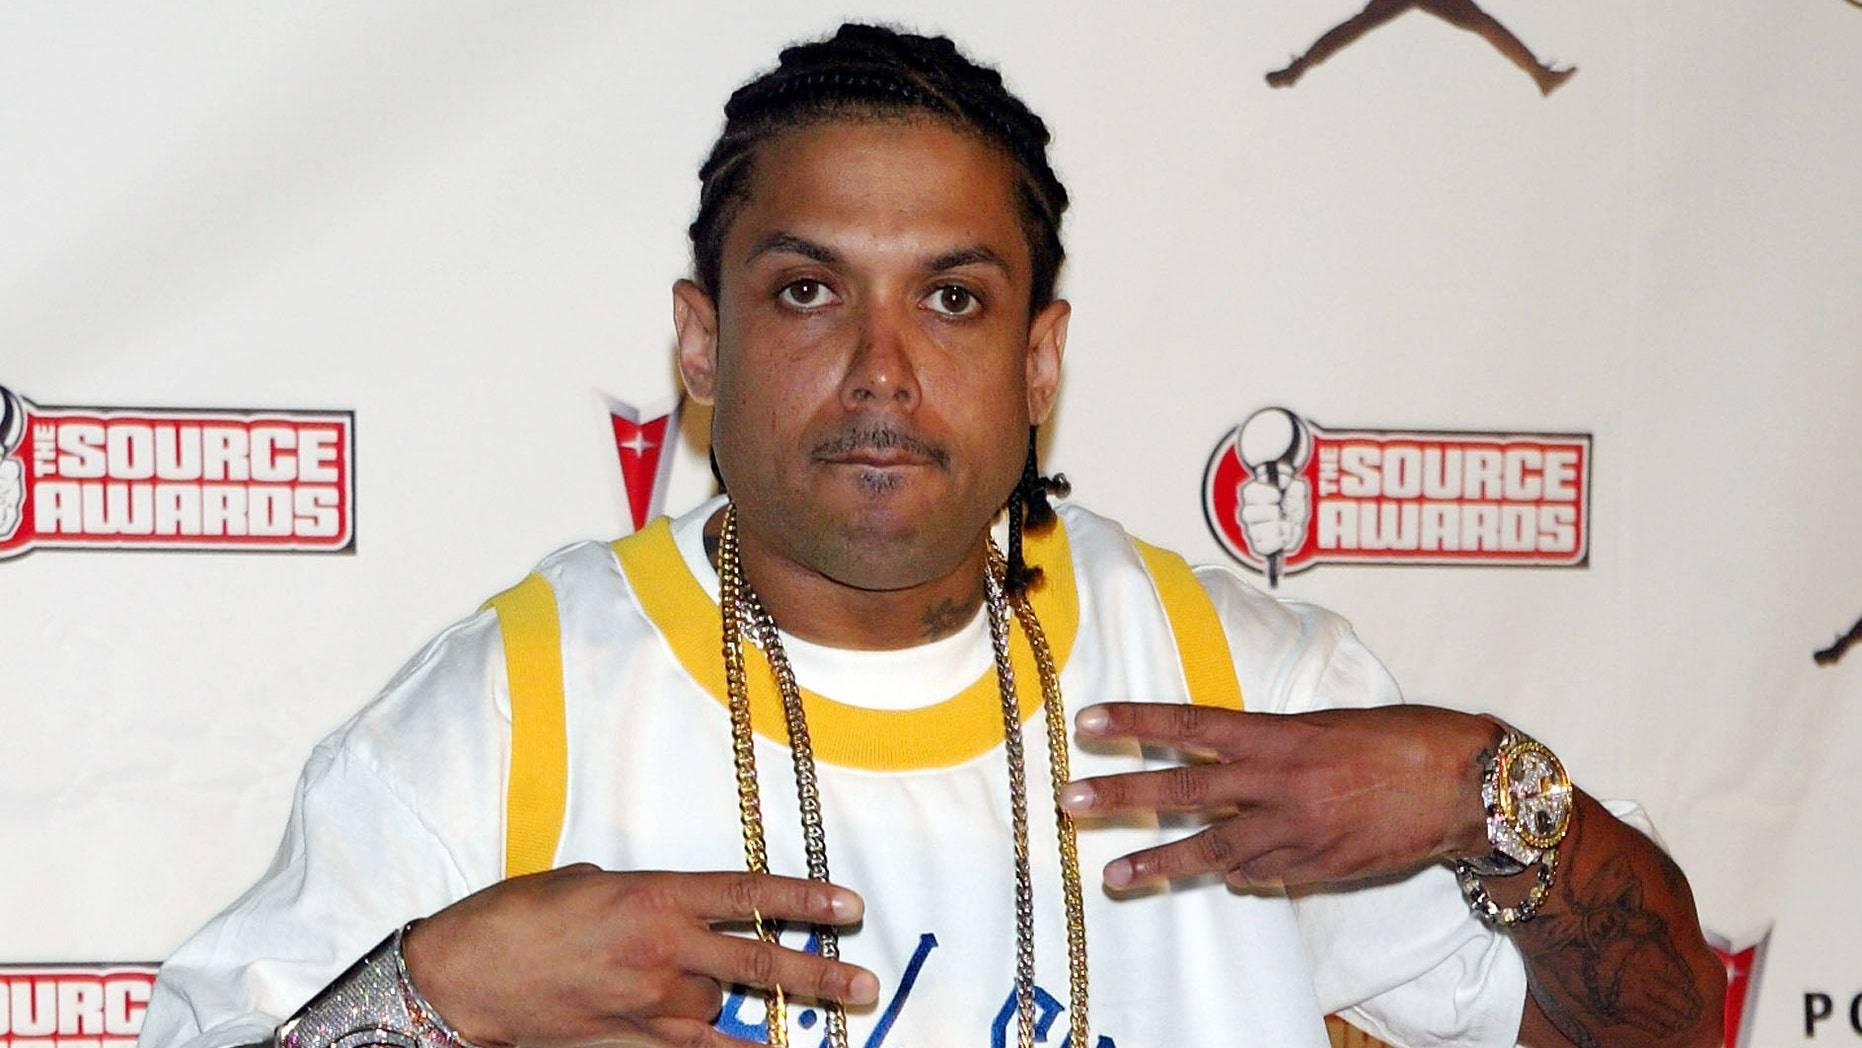 MIAMI - OCTOBER 13:  Rapper Benzino arrives at The Source Hip-Hop Music Awards 2003 at the Miami Arena on October 13, 2003 in Miami, Florida. The show will air on the BET network on November 11, 2003 at 8:00 p.m.  (Photo by Scott Gries/Getty Images)